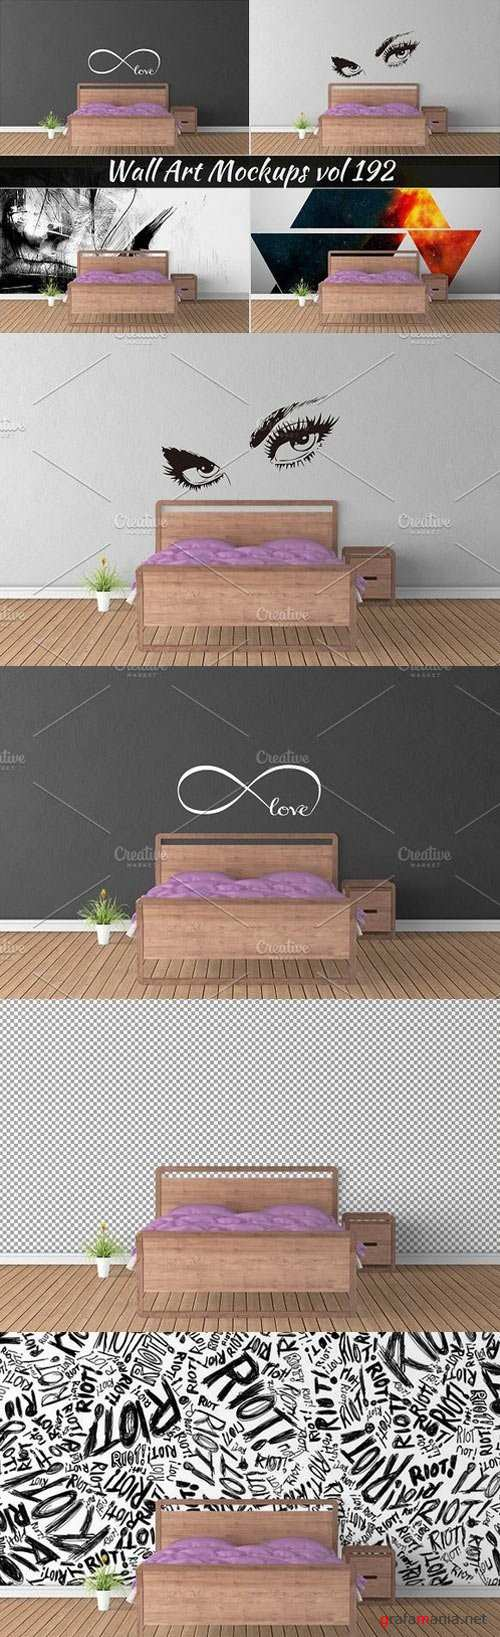 Wall Mockup - Sticker Mockup Vol 192 - 1121557